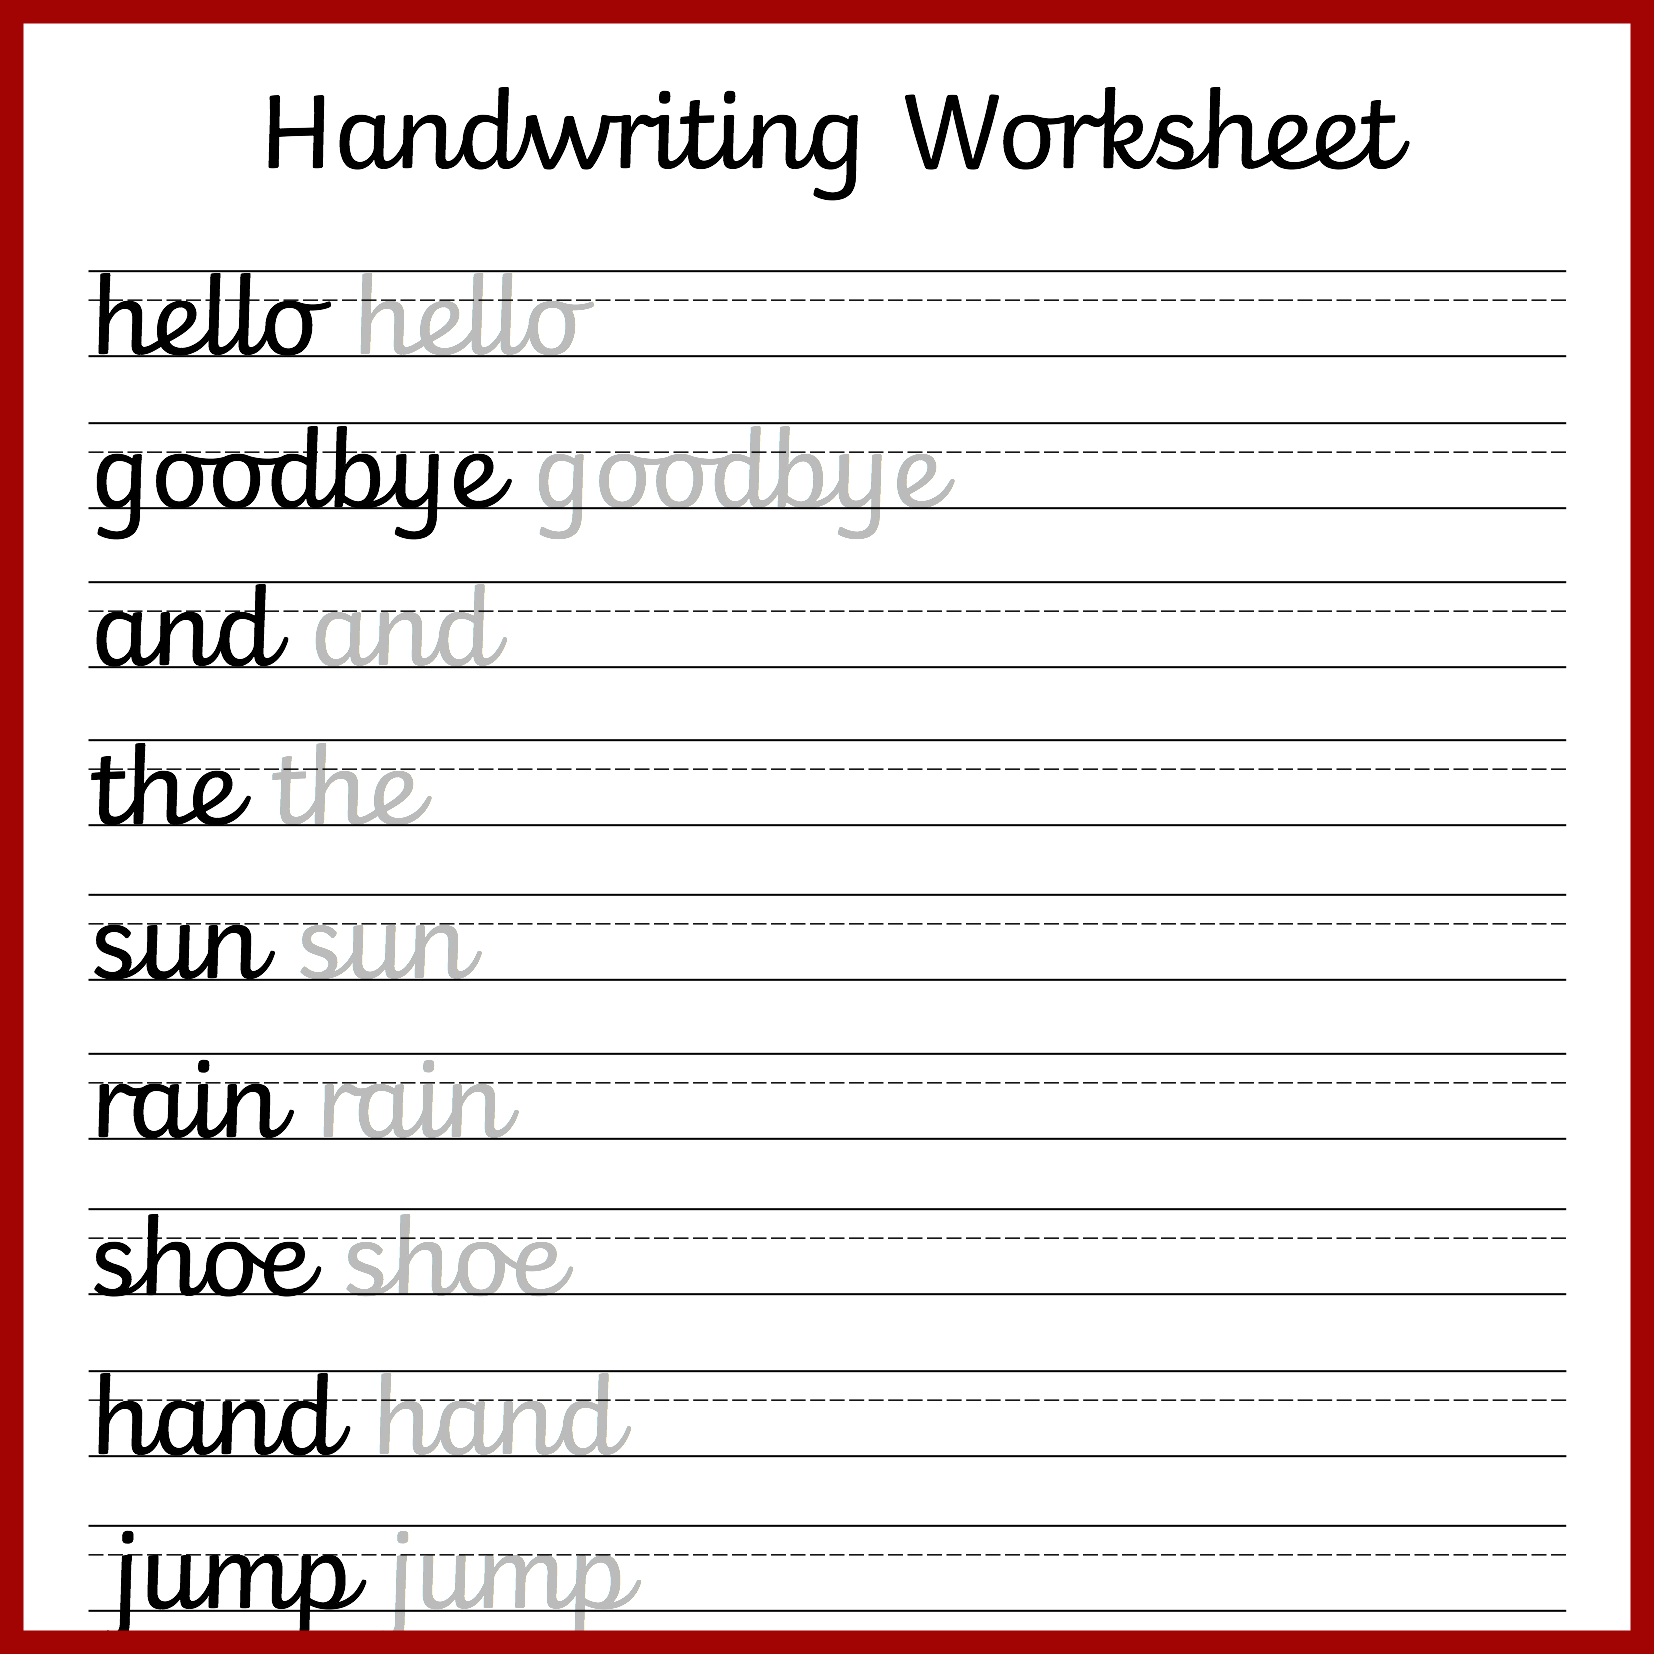 cursive letters worksheets free cursive handwriting worksheets free printable 17529 | Handwriting Words